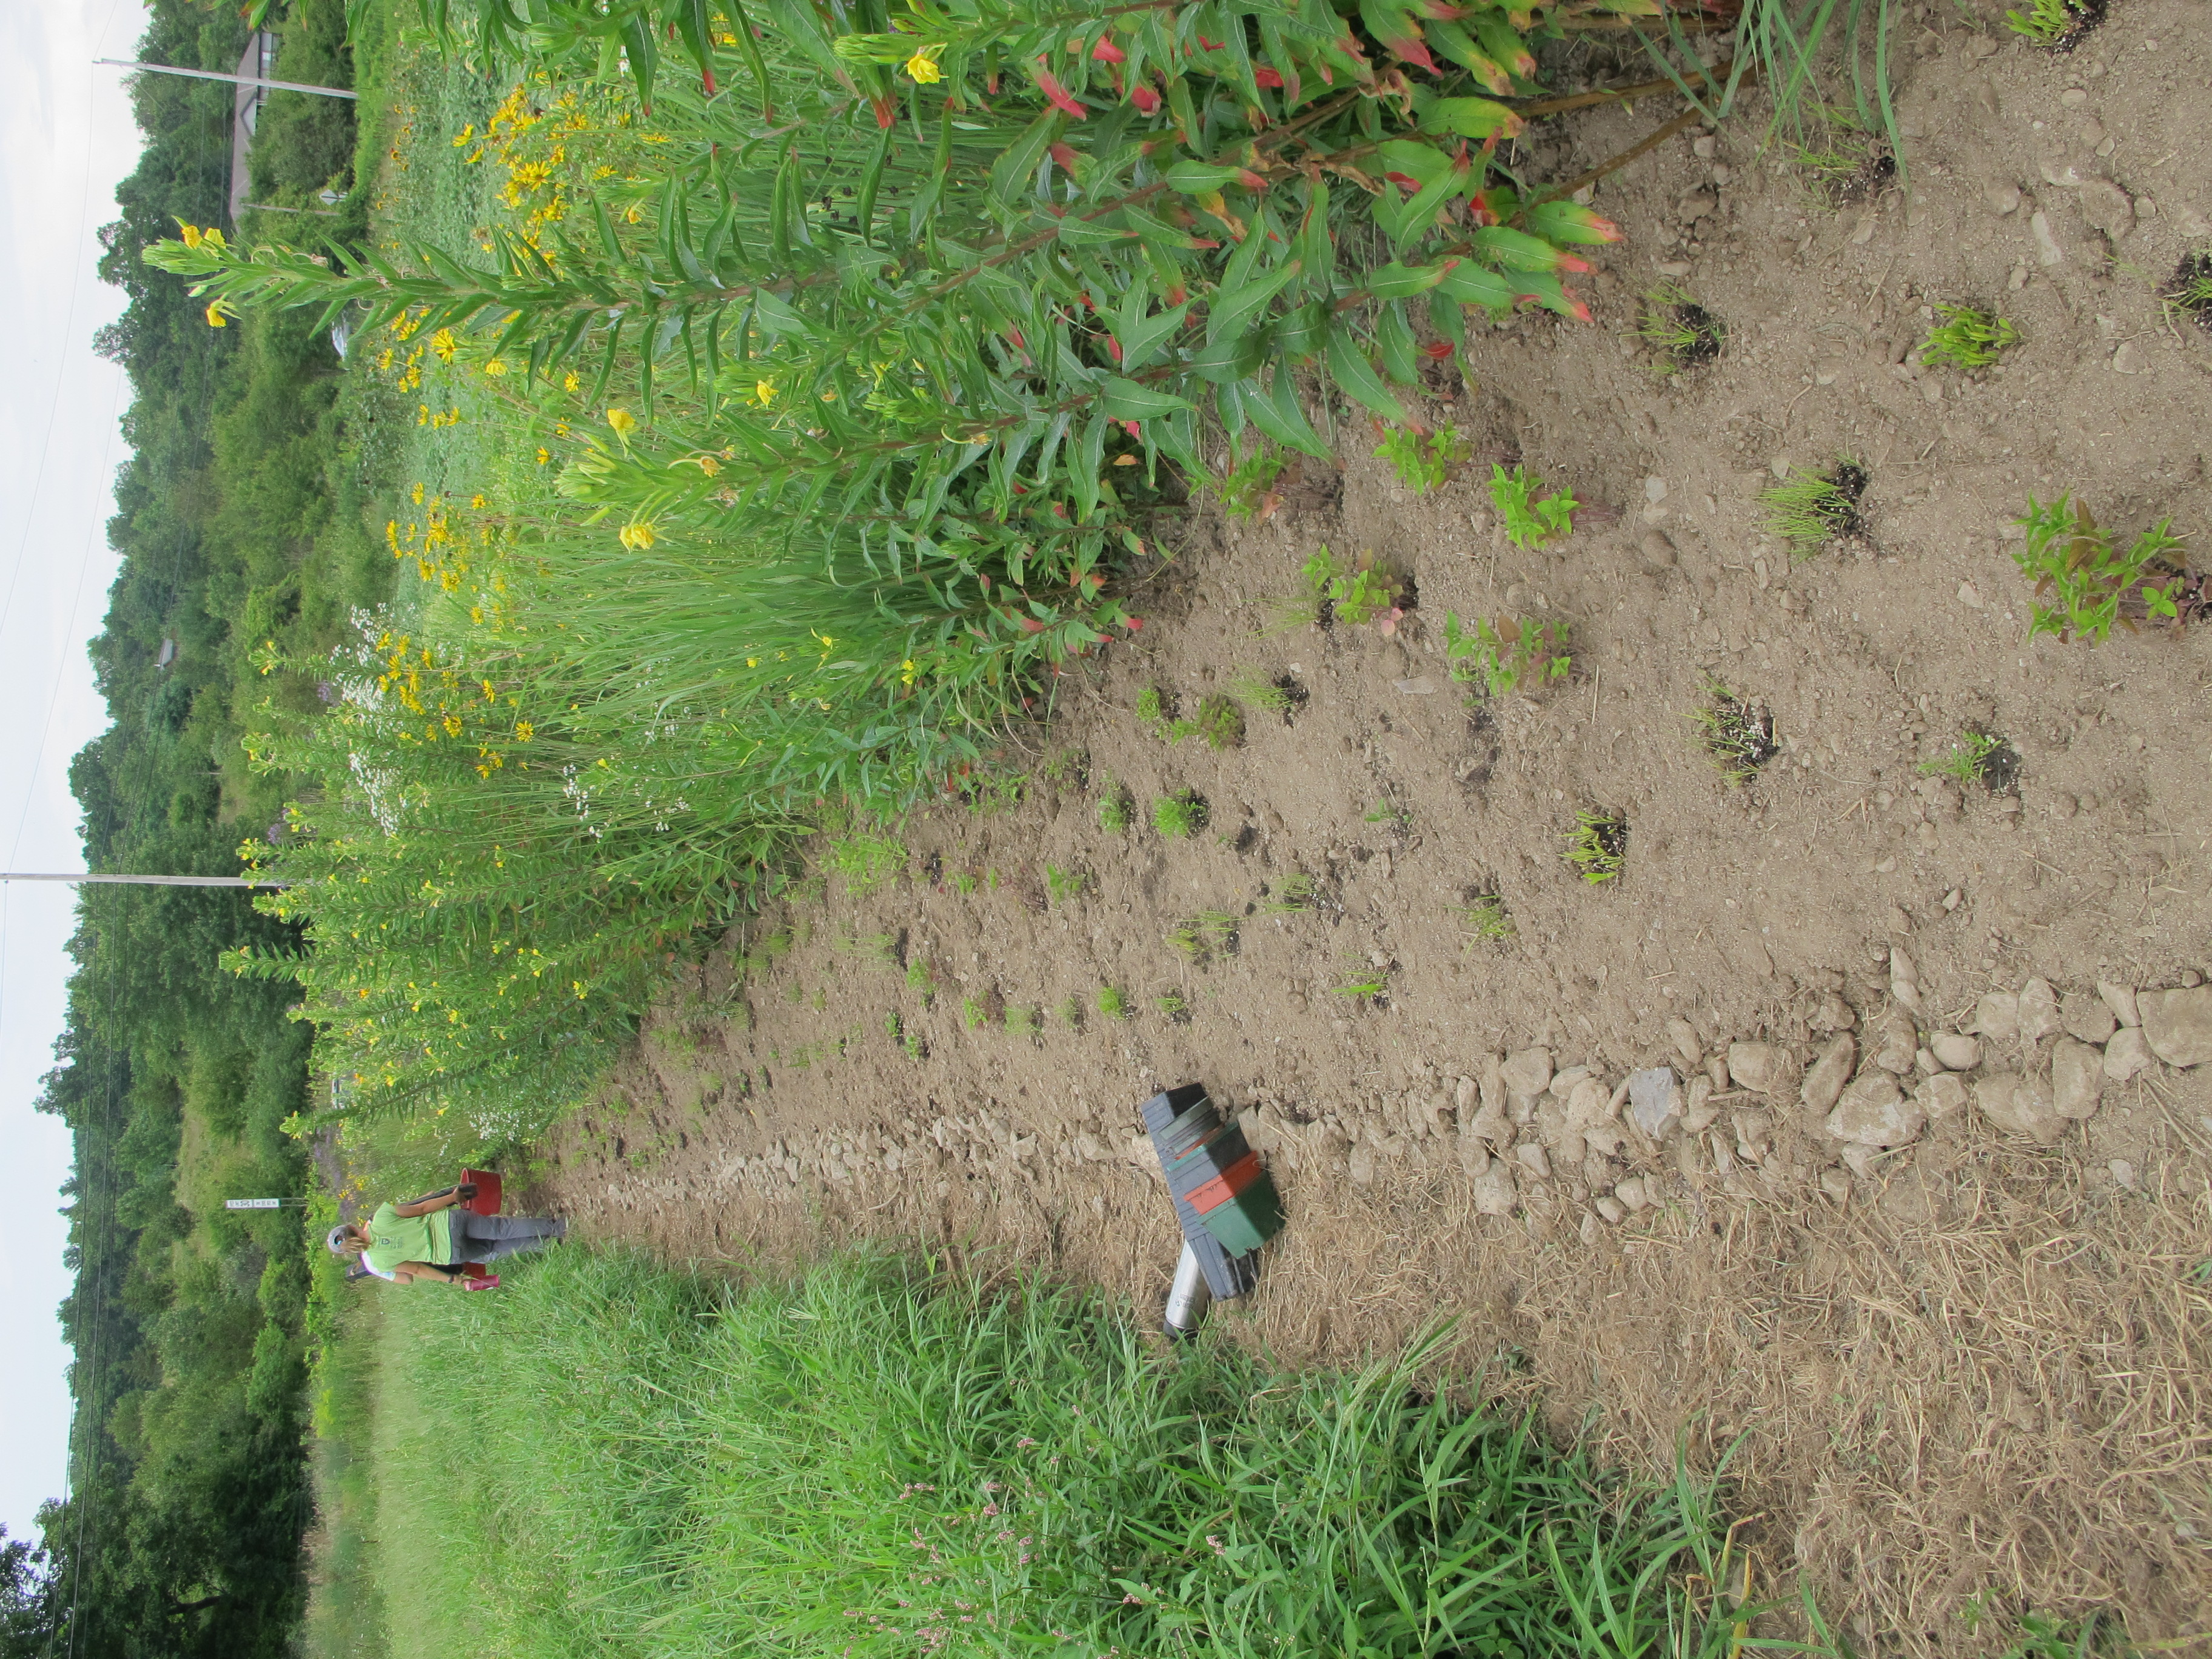 mature plants next to bare soil filled with seedlings